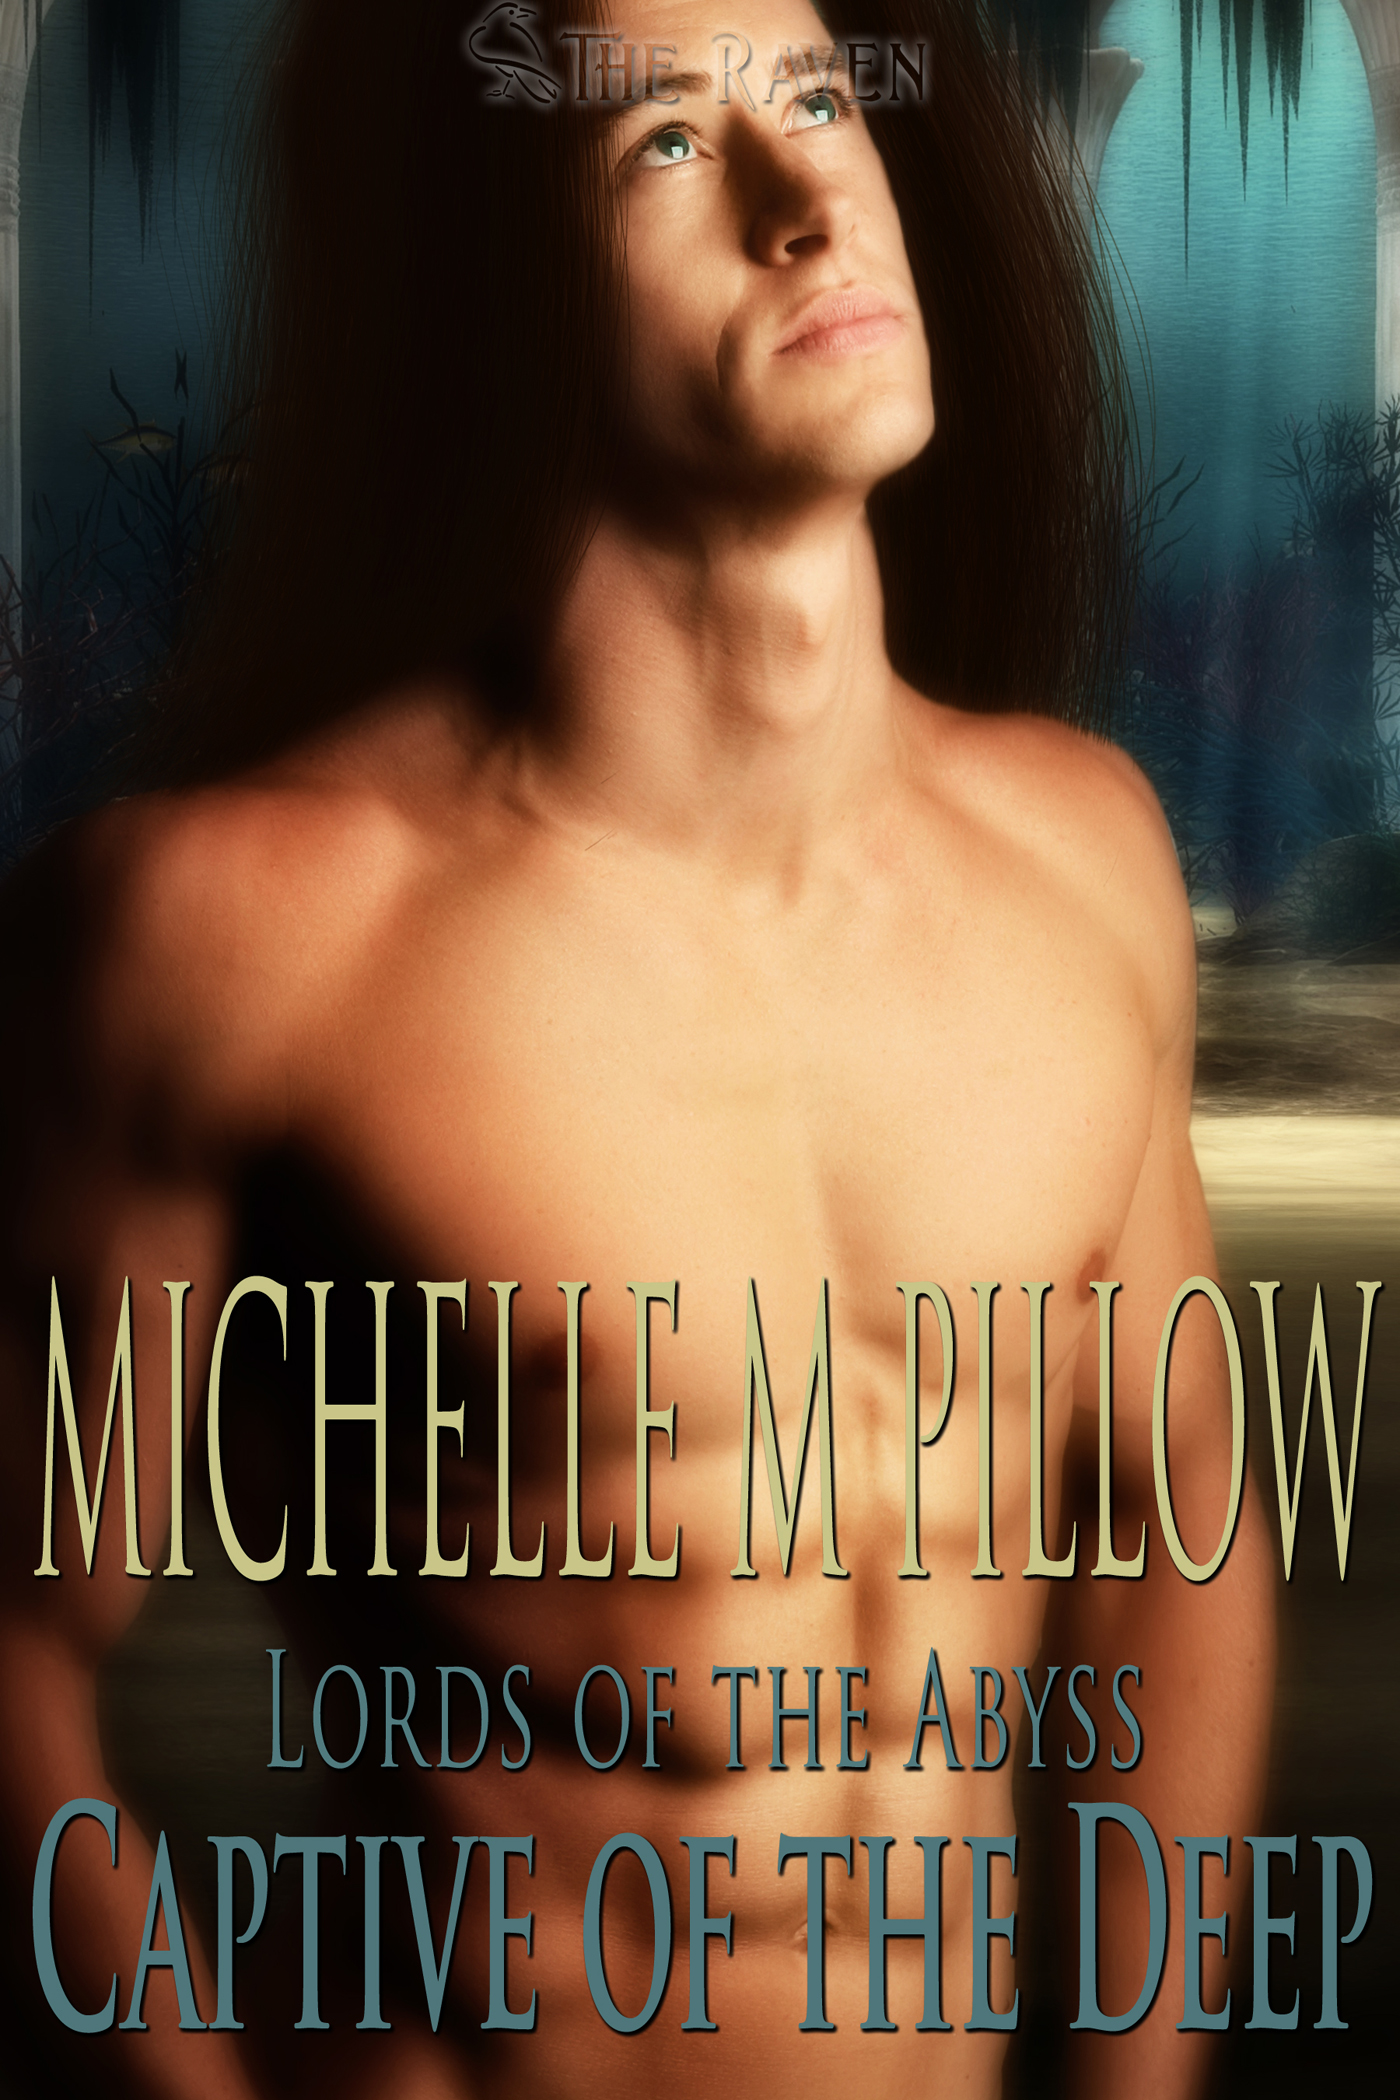 Michelle M. Pillow - Captive of the Deep (Lords of the Abyss 3)